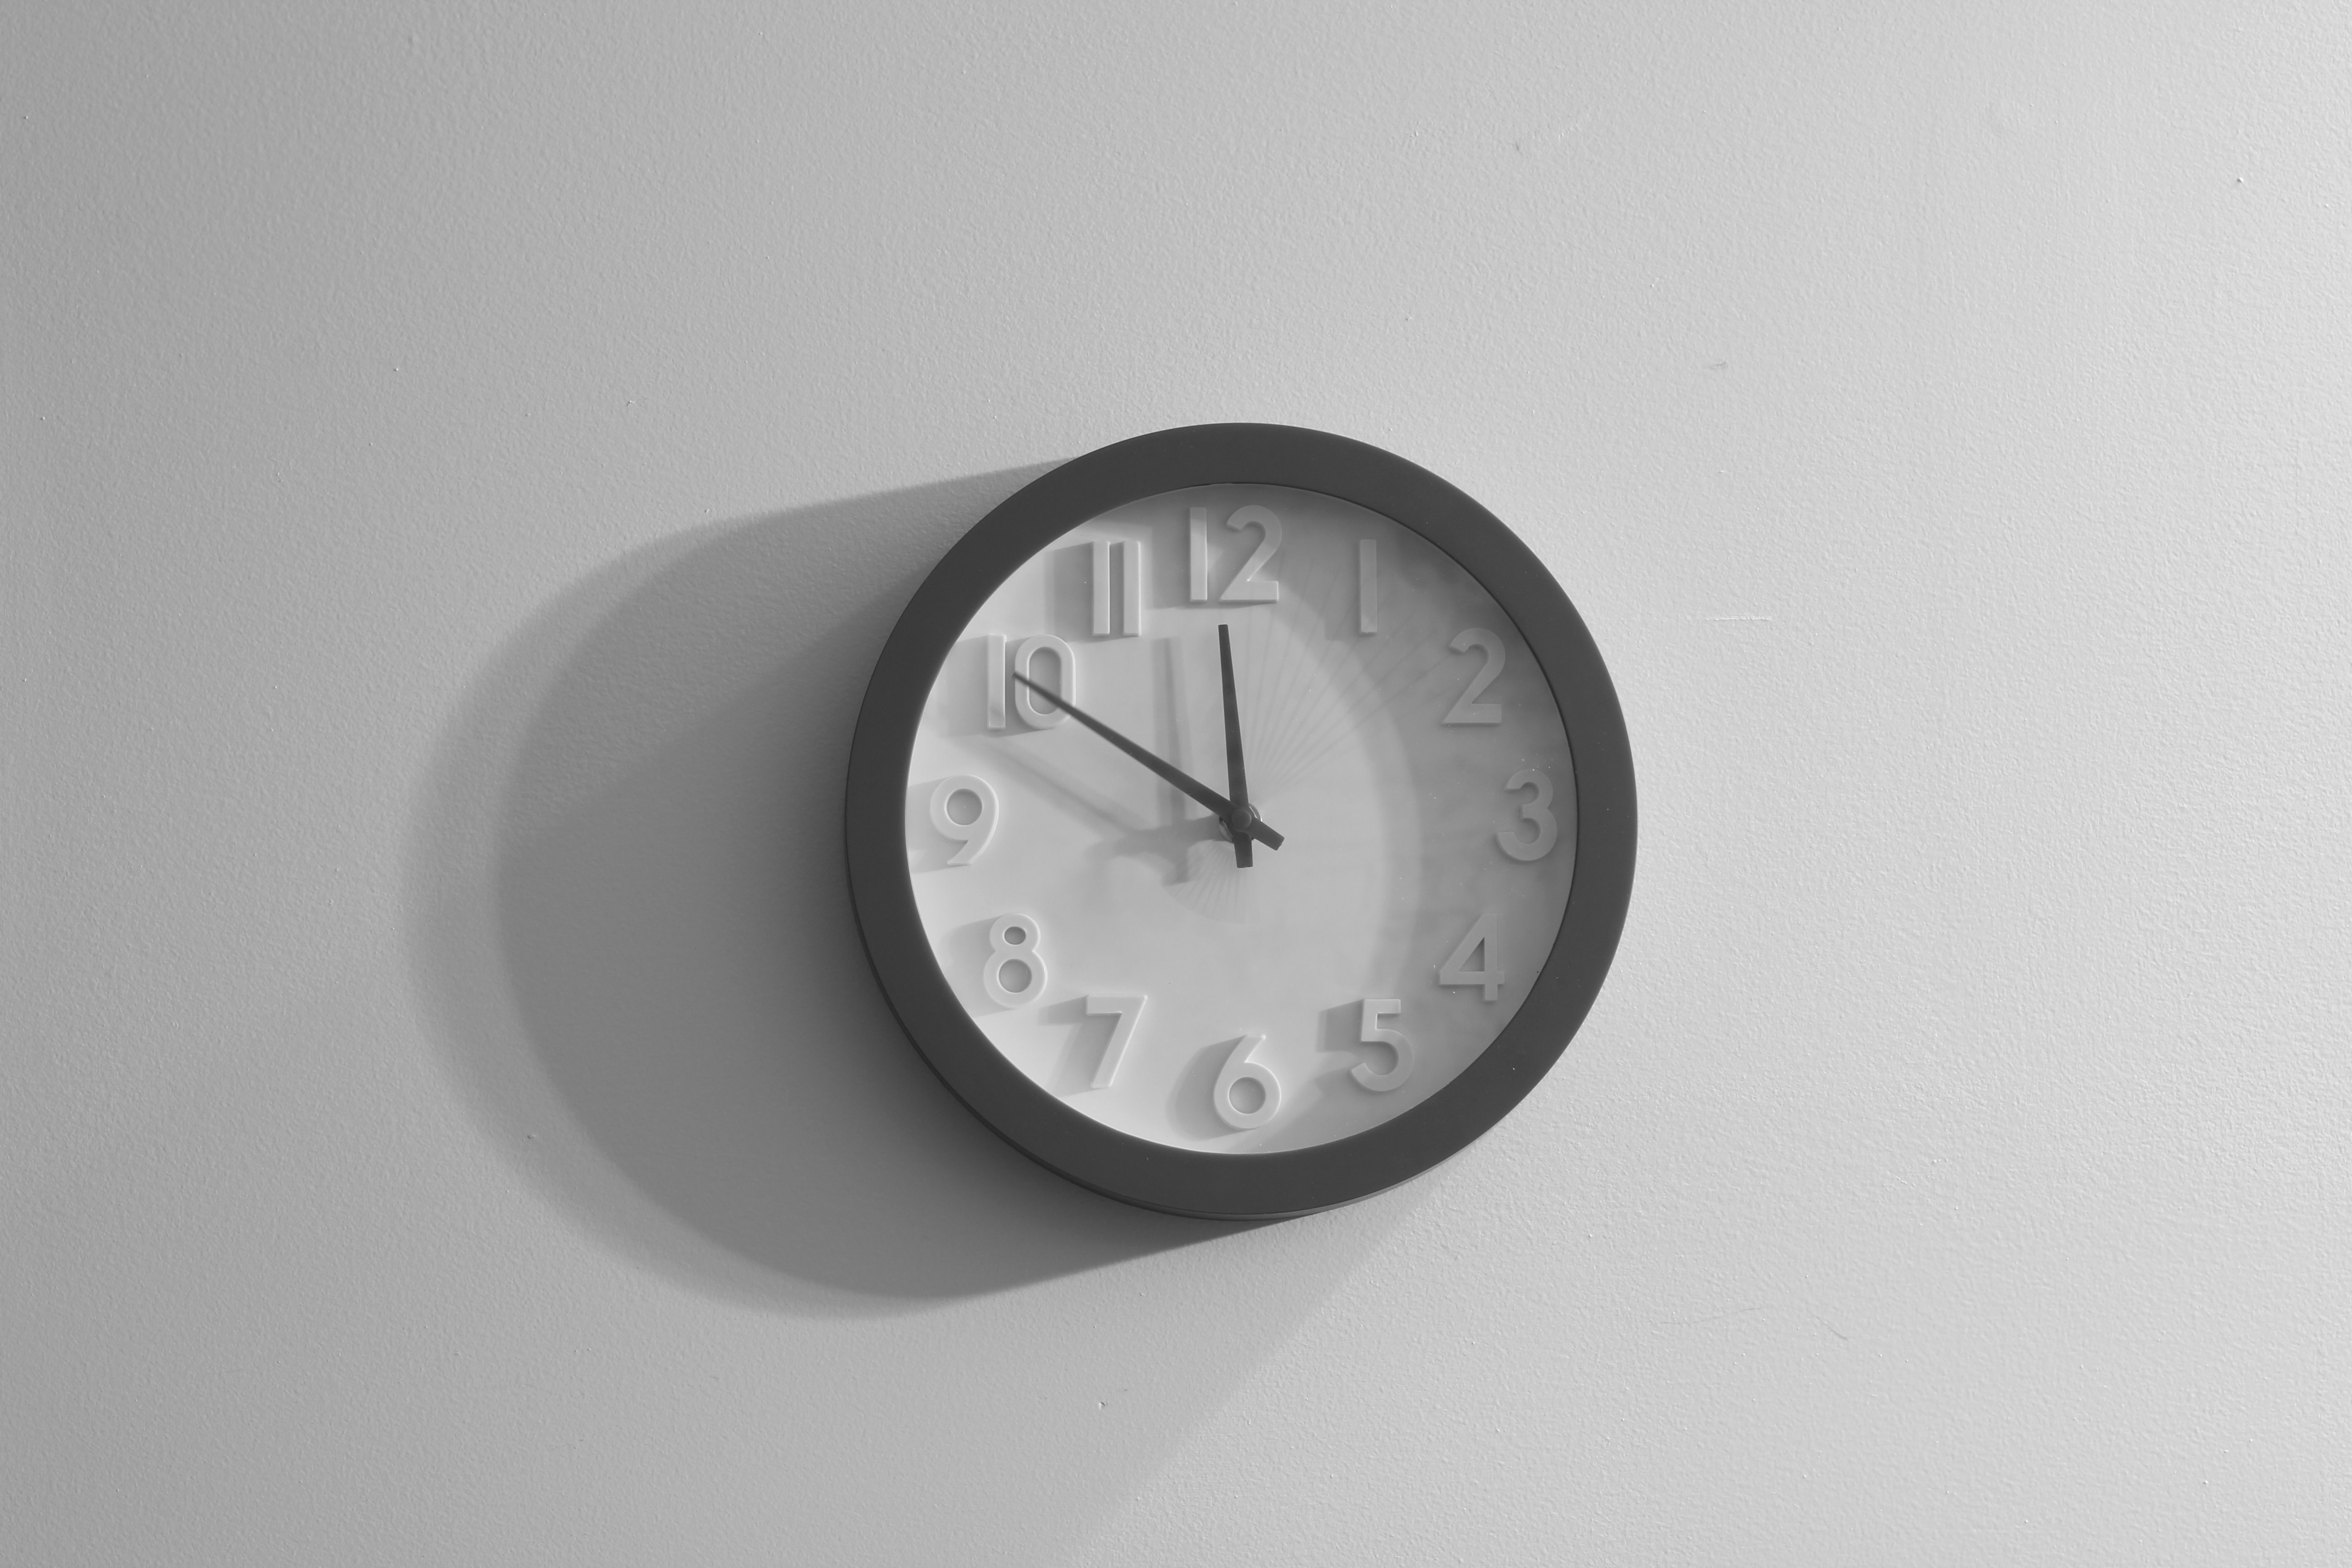 Free stock photos of clock pexels free stock photo of black and white wall clock gray amipublicfo Gallery